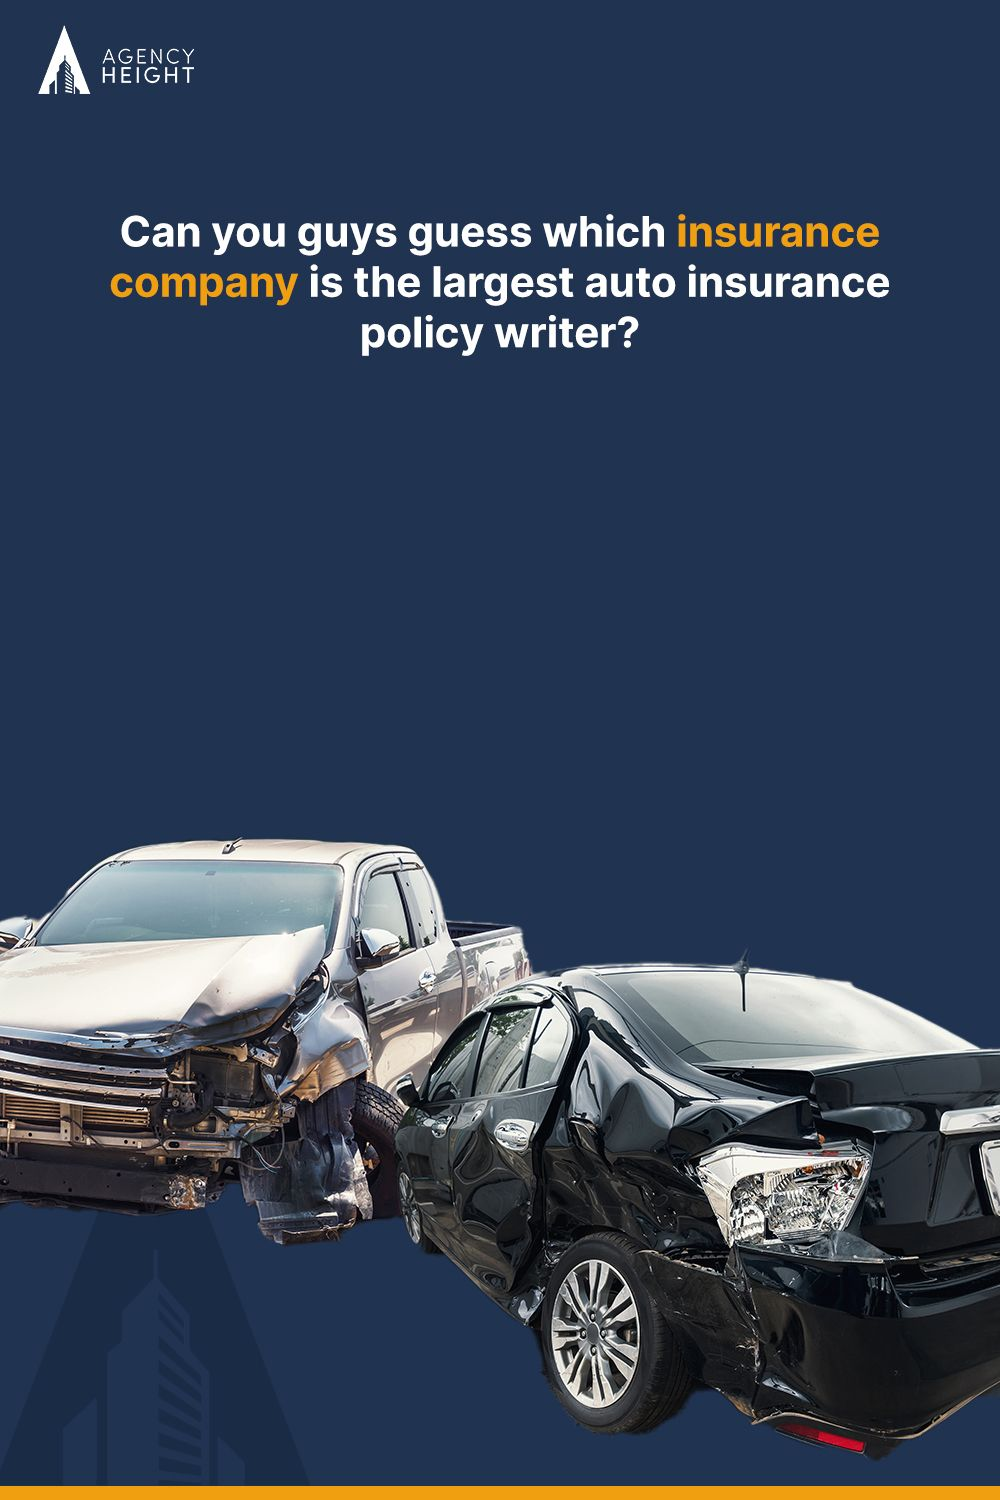 34 Insurance Facts Ideas In 2021 Insurance Insurance Agent Insurance Industry